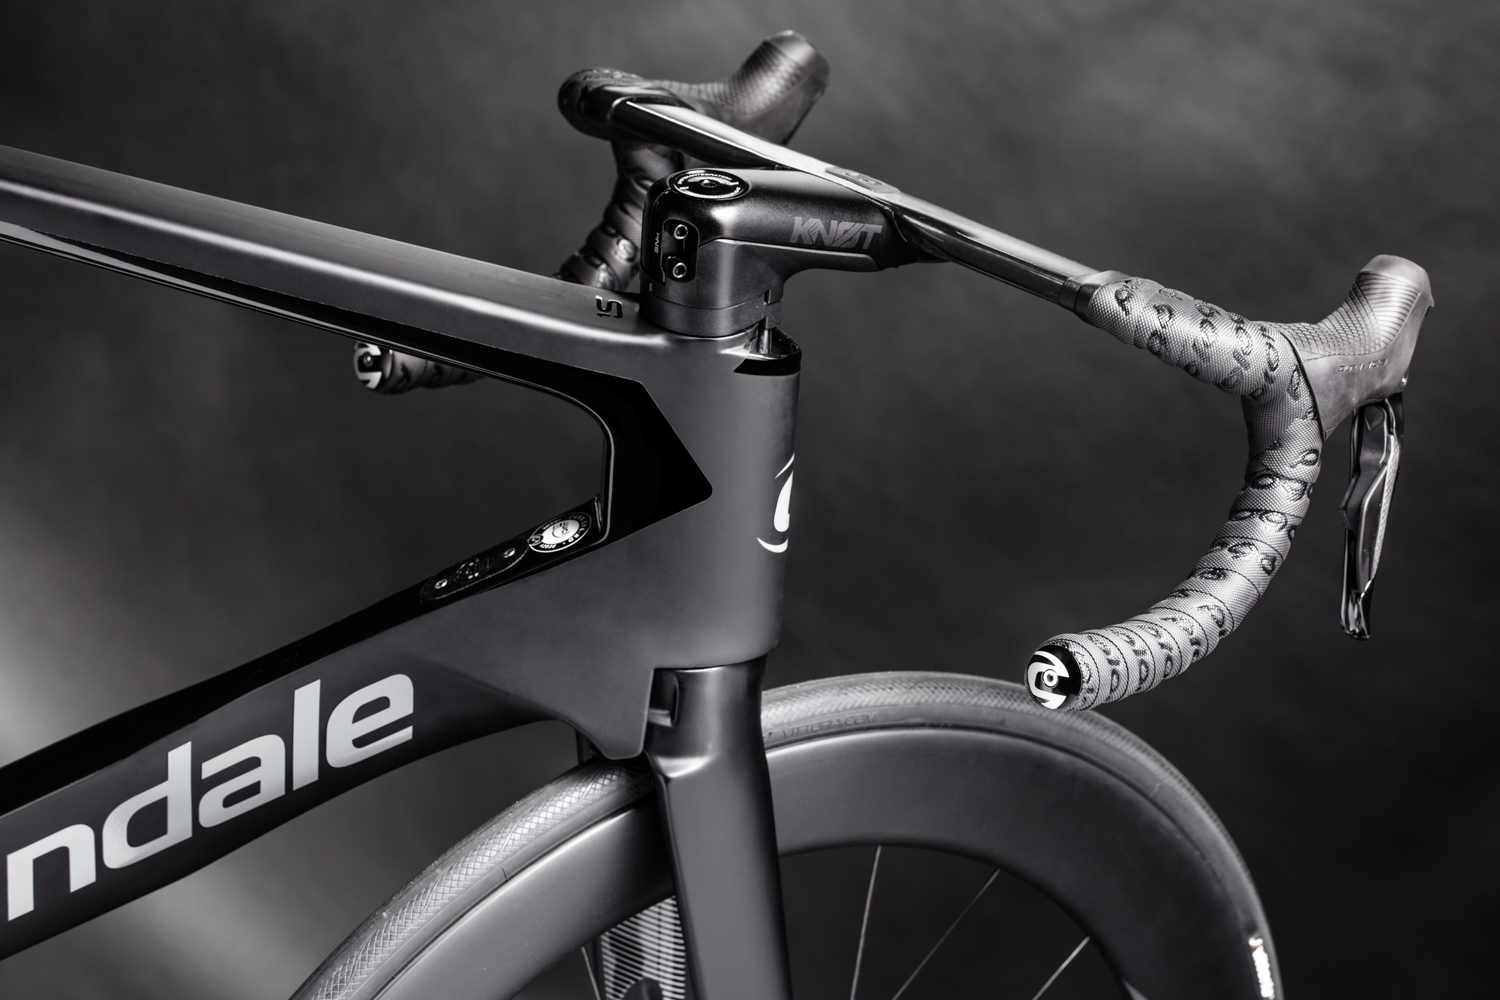 Fastest Road Bike >> Cannondale Claims Fastest Road Bike That S Uci Legal Gearjunkie